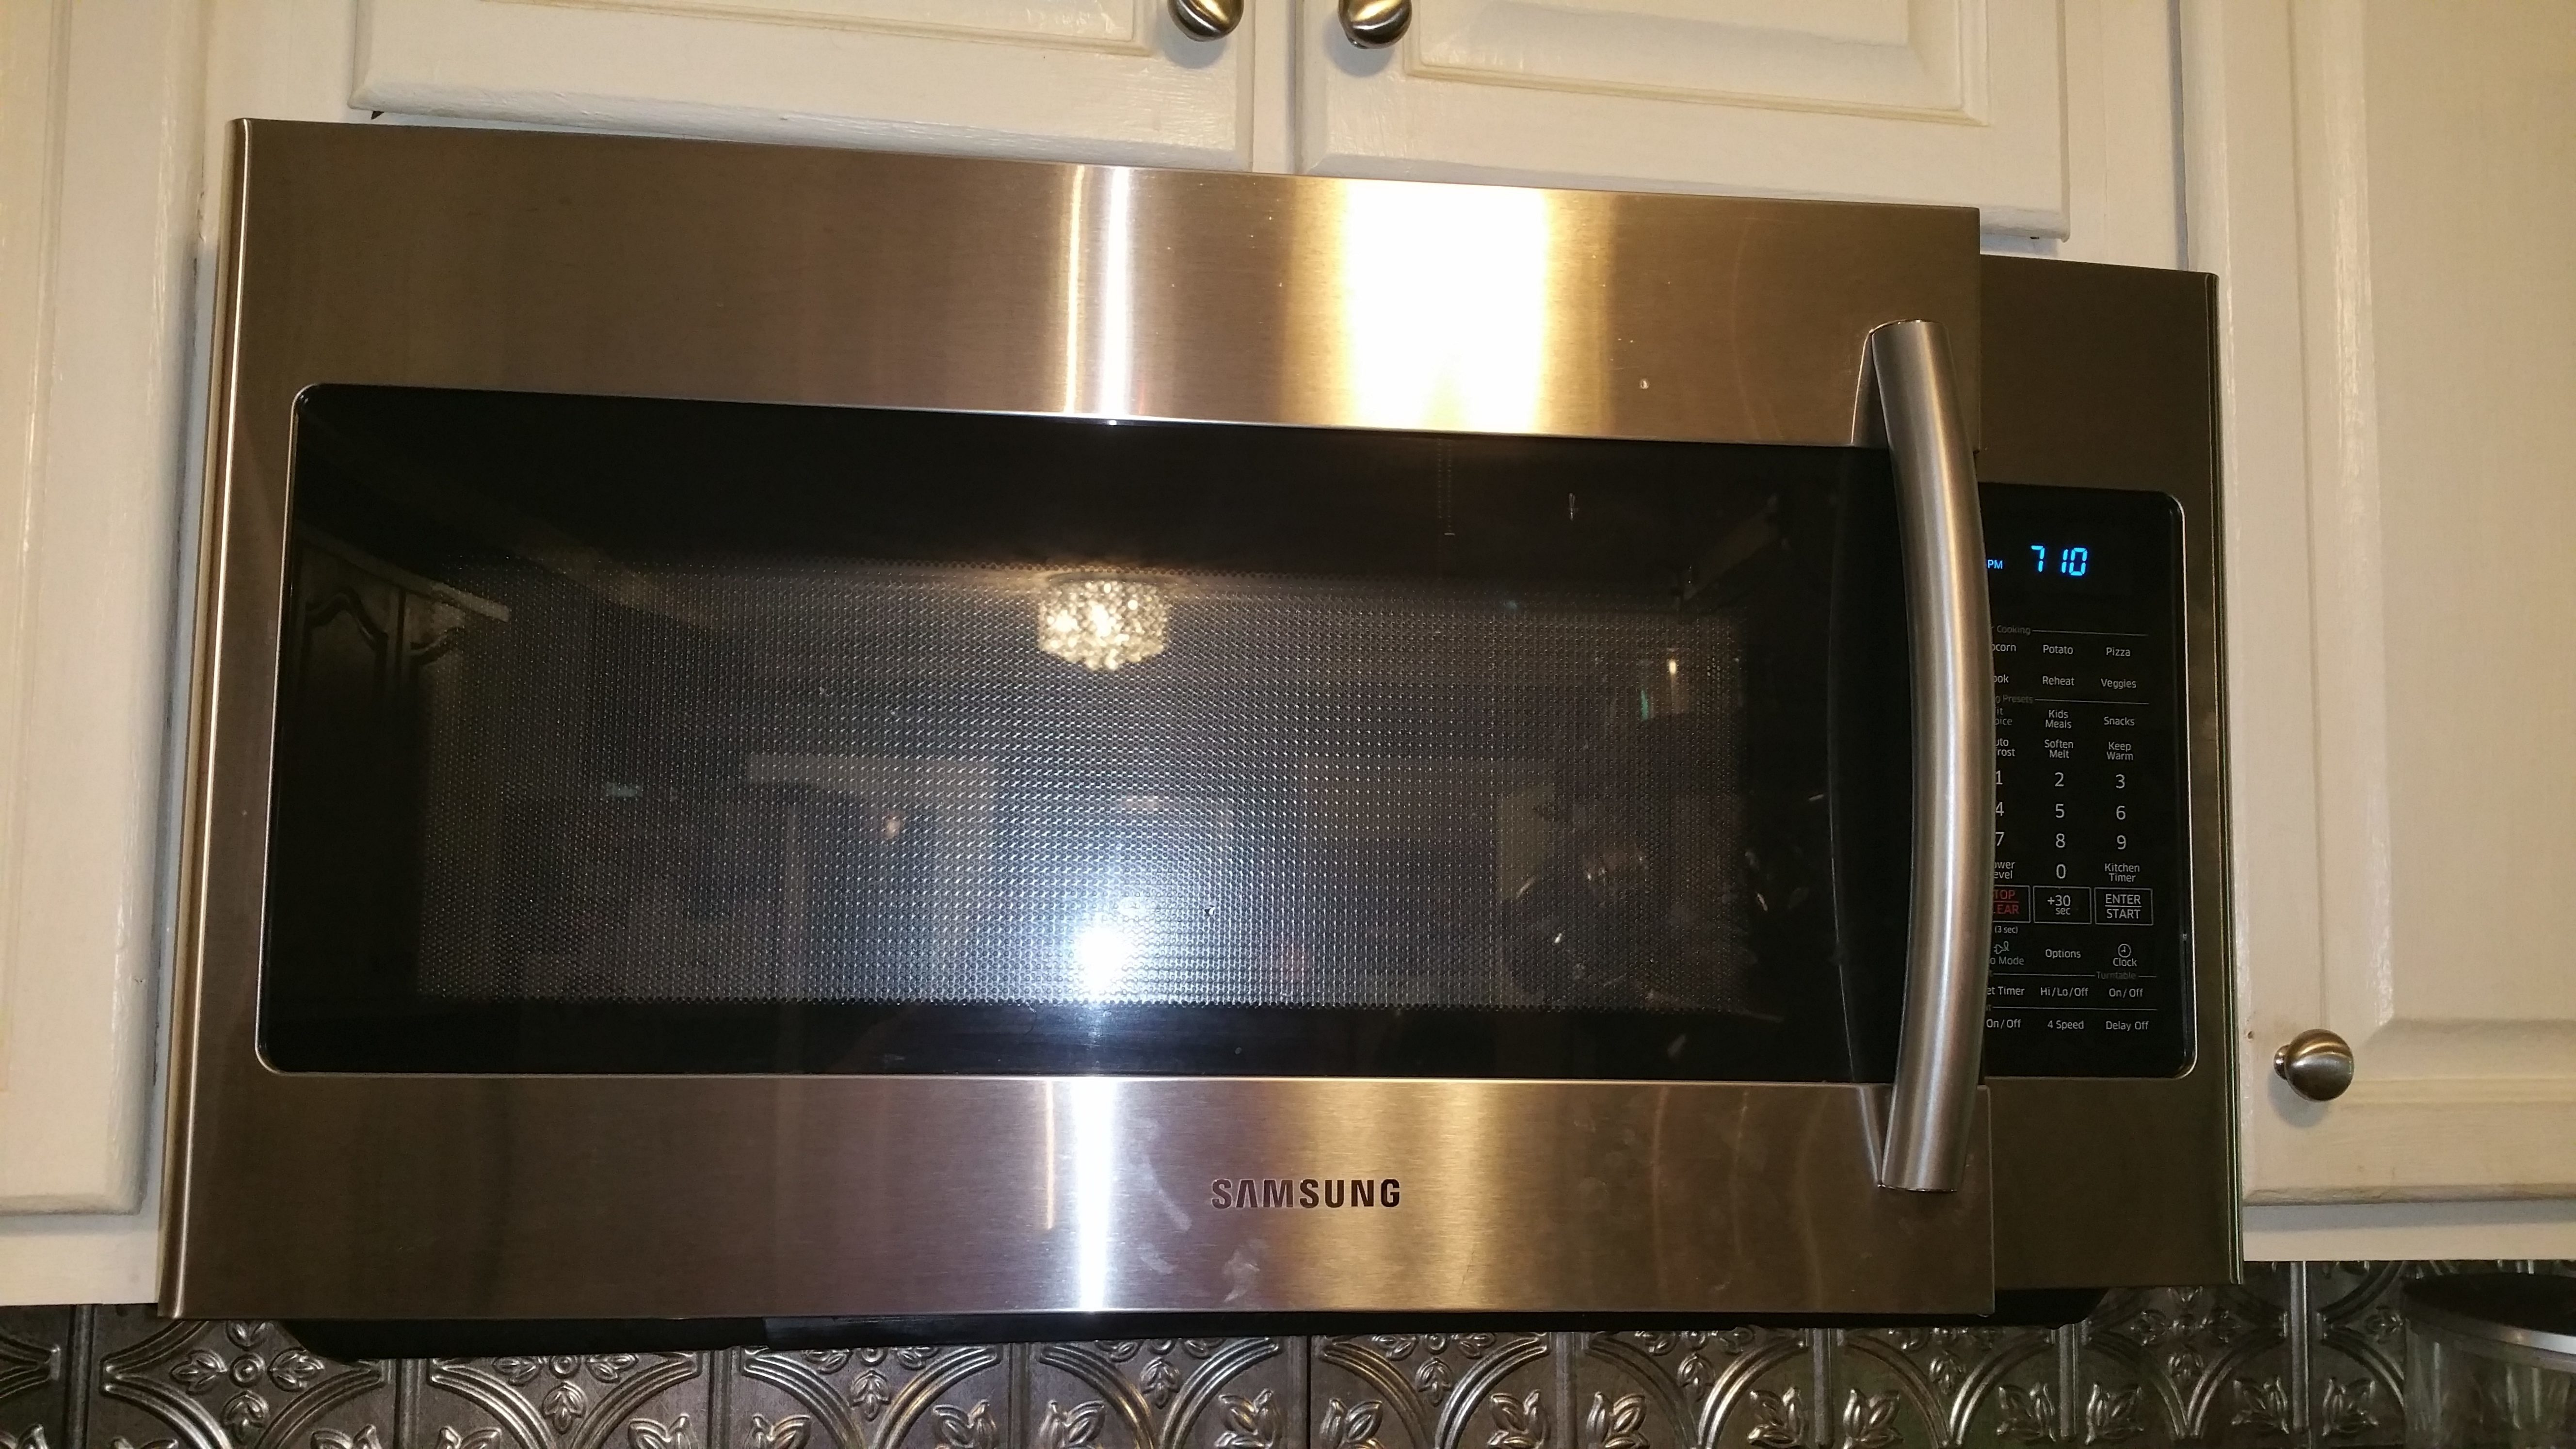 Lowes microwaves over the range with vent - Purchased 4 Months Ago From Lowe S I Wasn T Even Using The Inside Of The Microwave At The Time I Was Using The Exhaust Fan For I Was Boiling Pasta On The